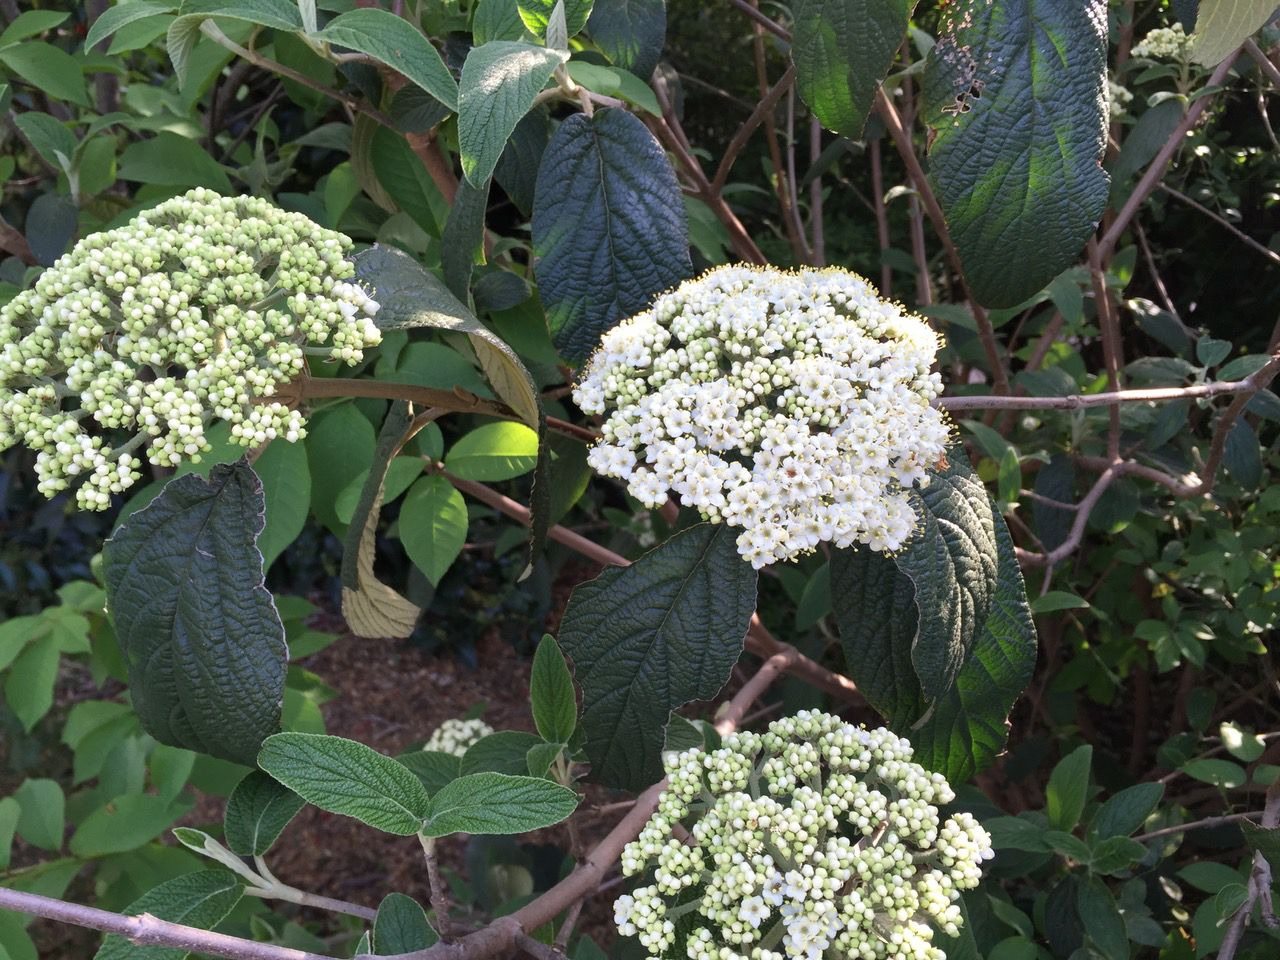 Leatherleaf or rough-leaf viburnum is another good choice and doesn't have the name confusion. It has mildly fragrant creamy white flower clusters.